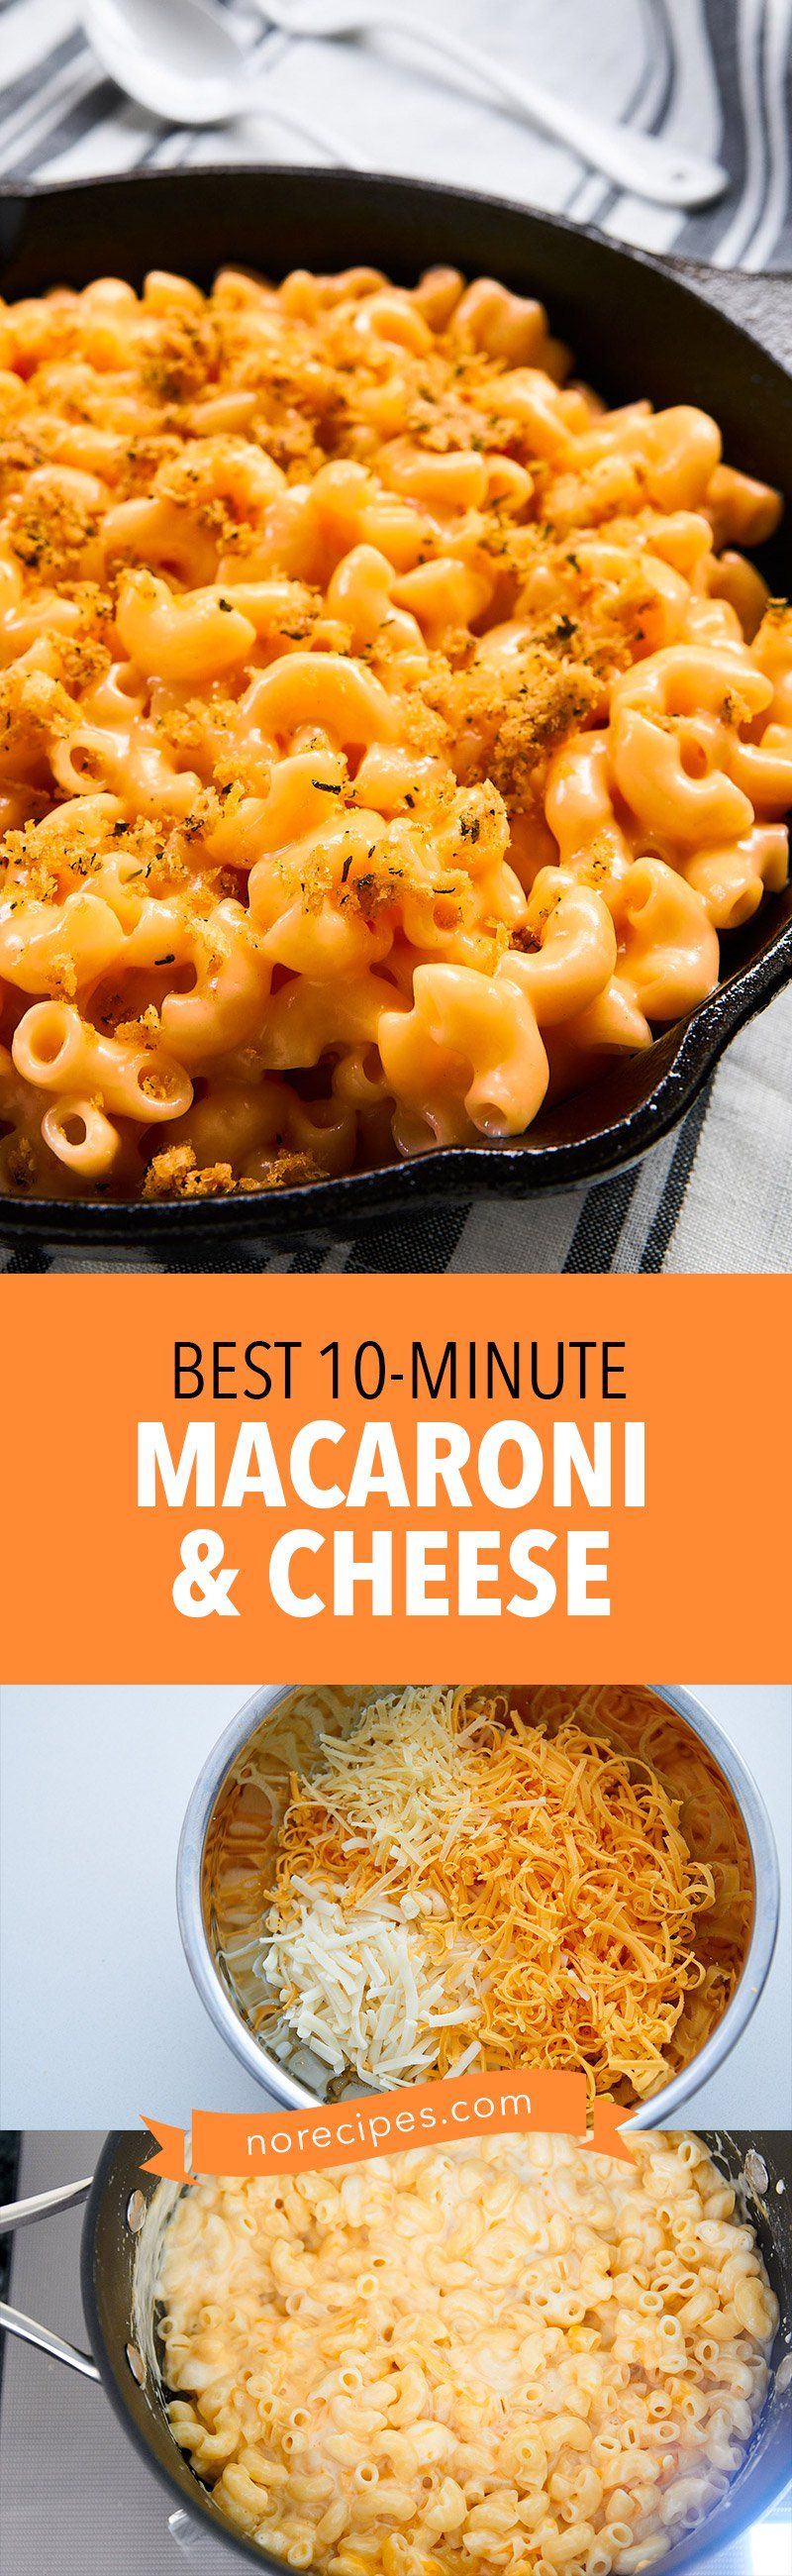 Best Stove-top Macaroni and Cheese Recipe - 10 minutes